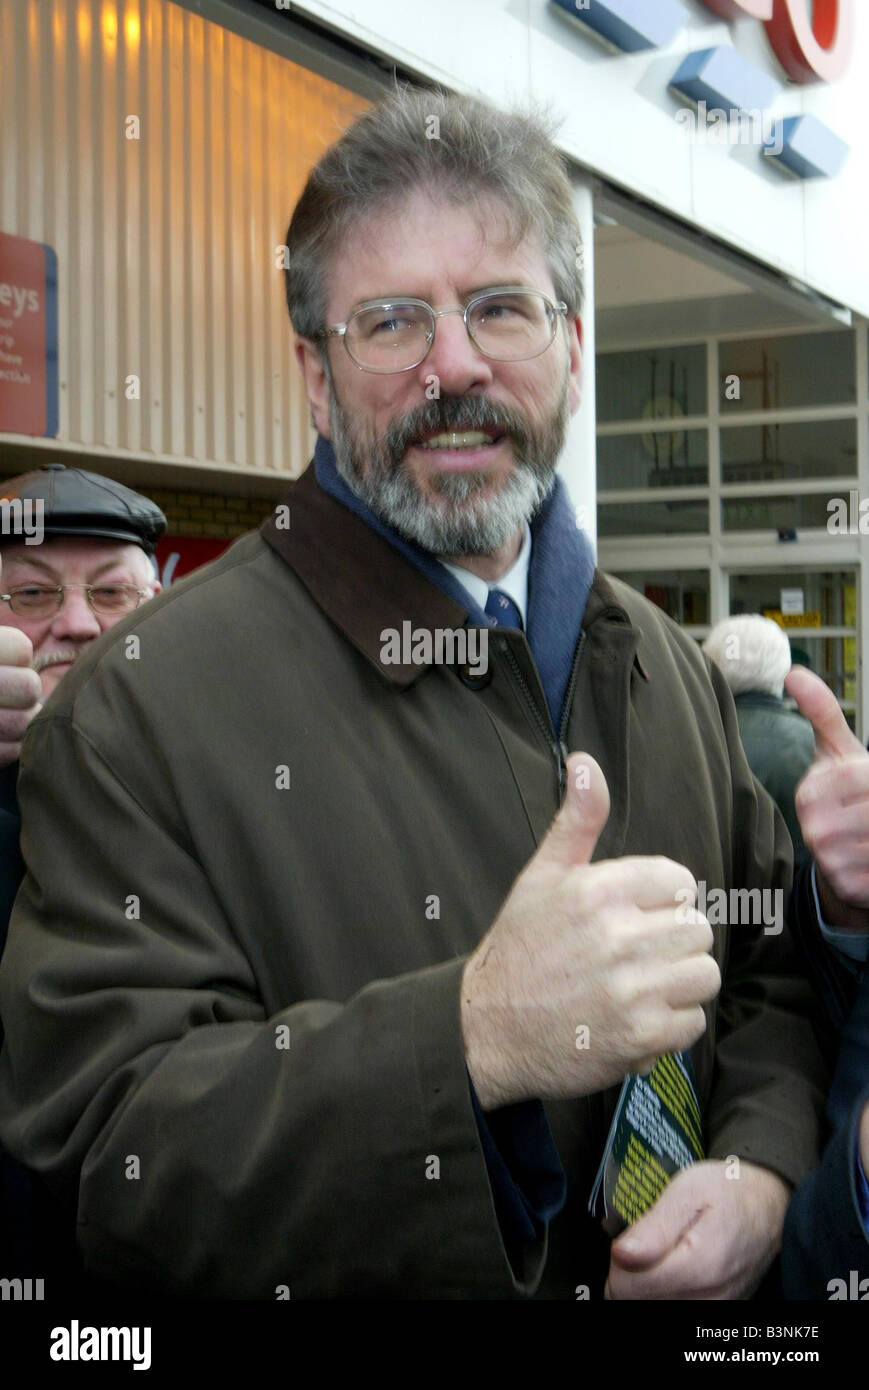 Northern Ireland Assembly Elections November 2003 Sinn Fein President Gerry Adams giving the thumbs up for tomorrows - Stock Image